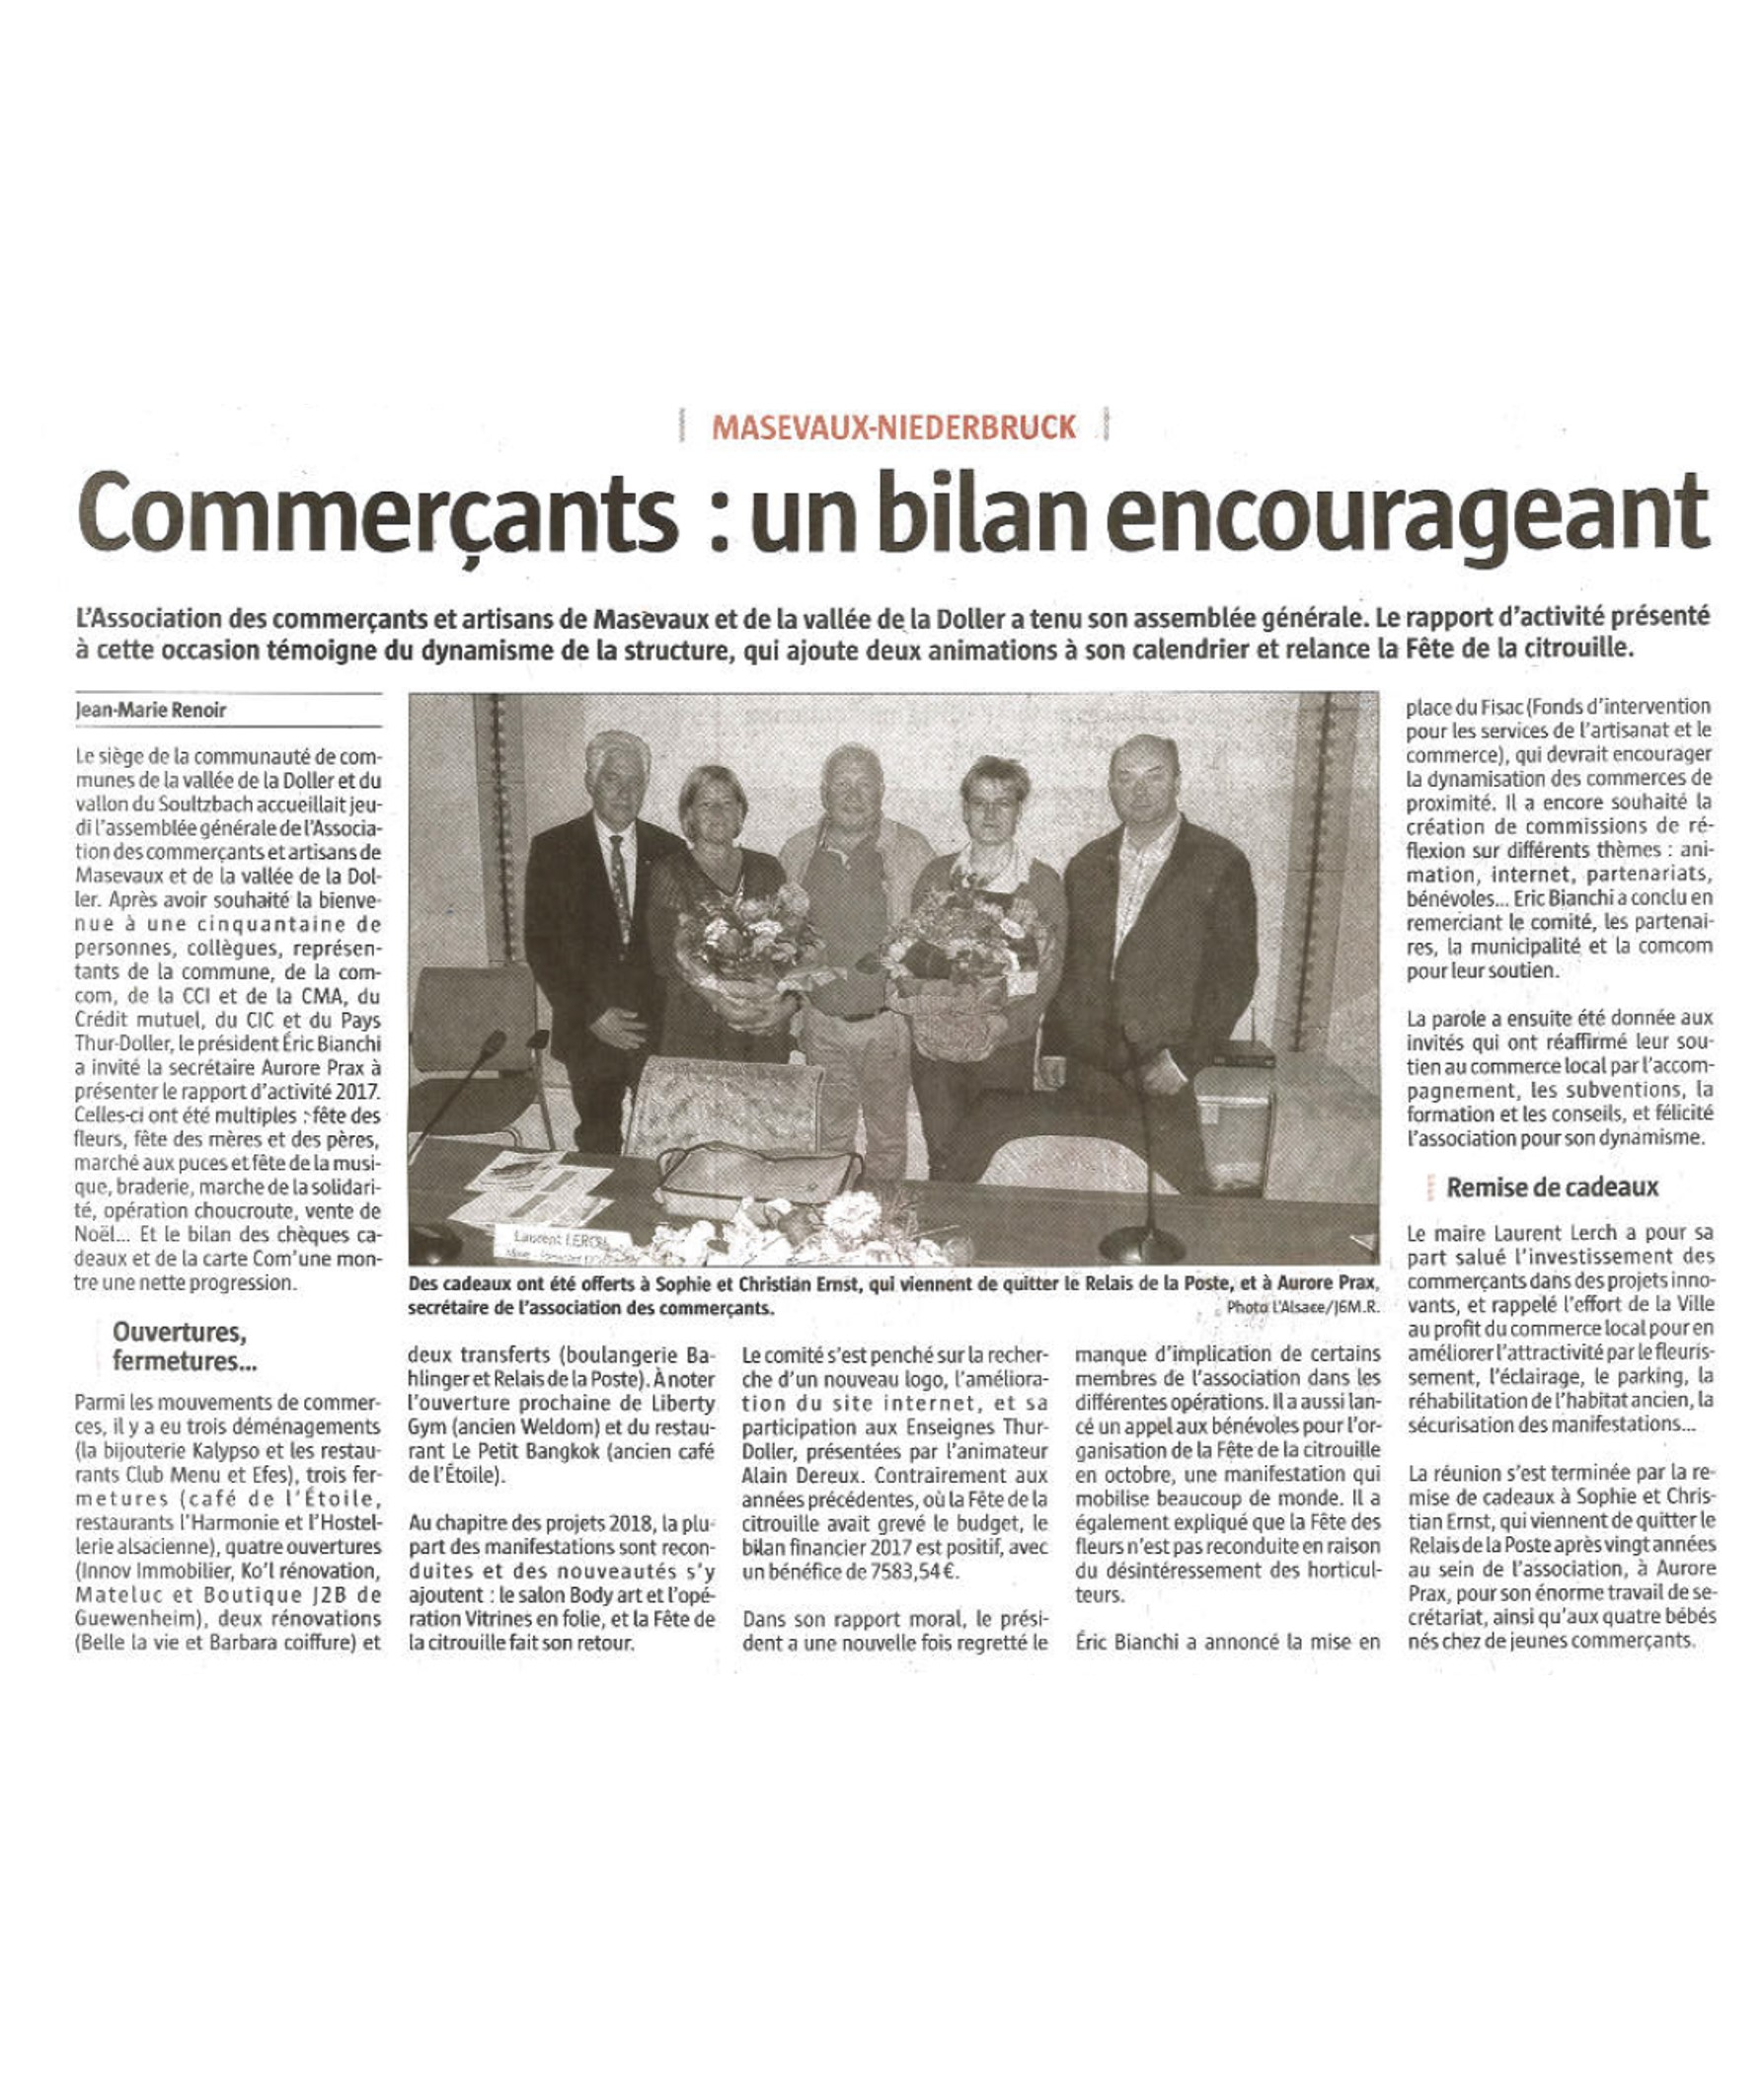 Commerçants - Un bilan encourageant - L'Alsace (15-04-2018)